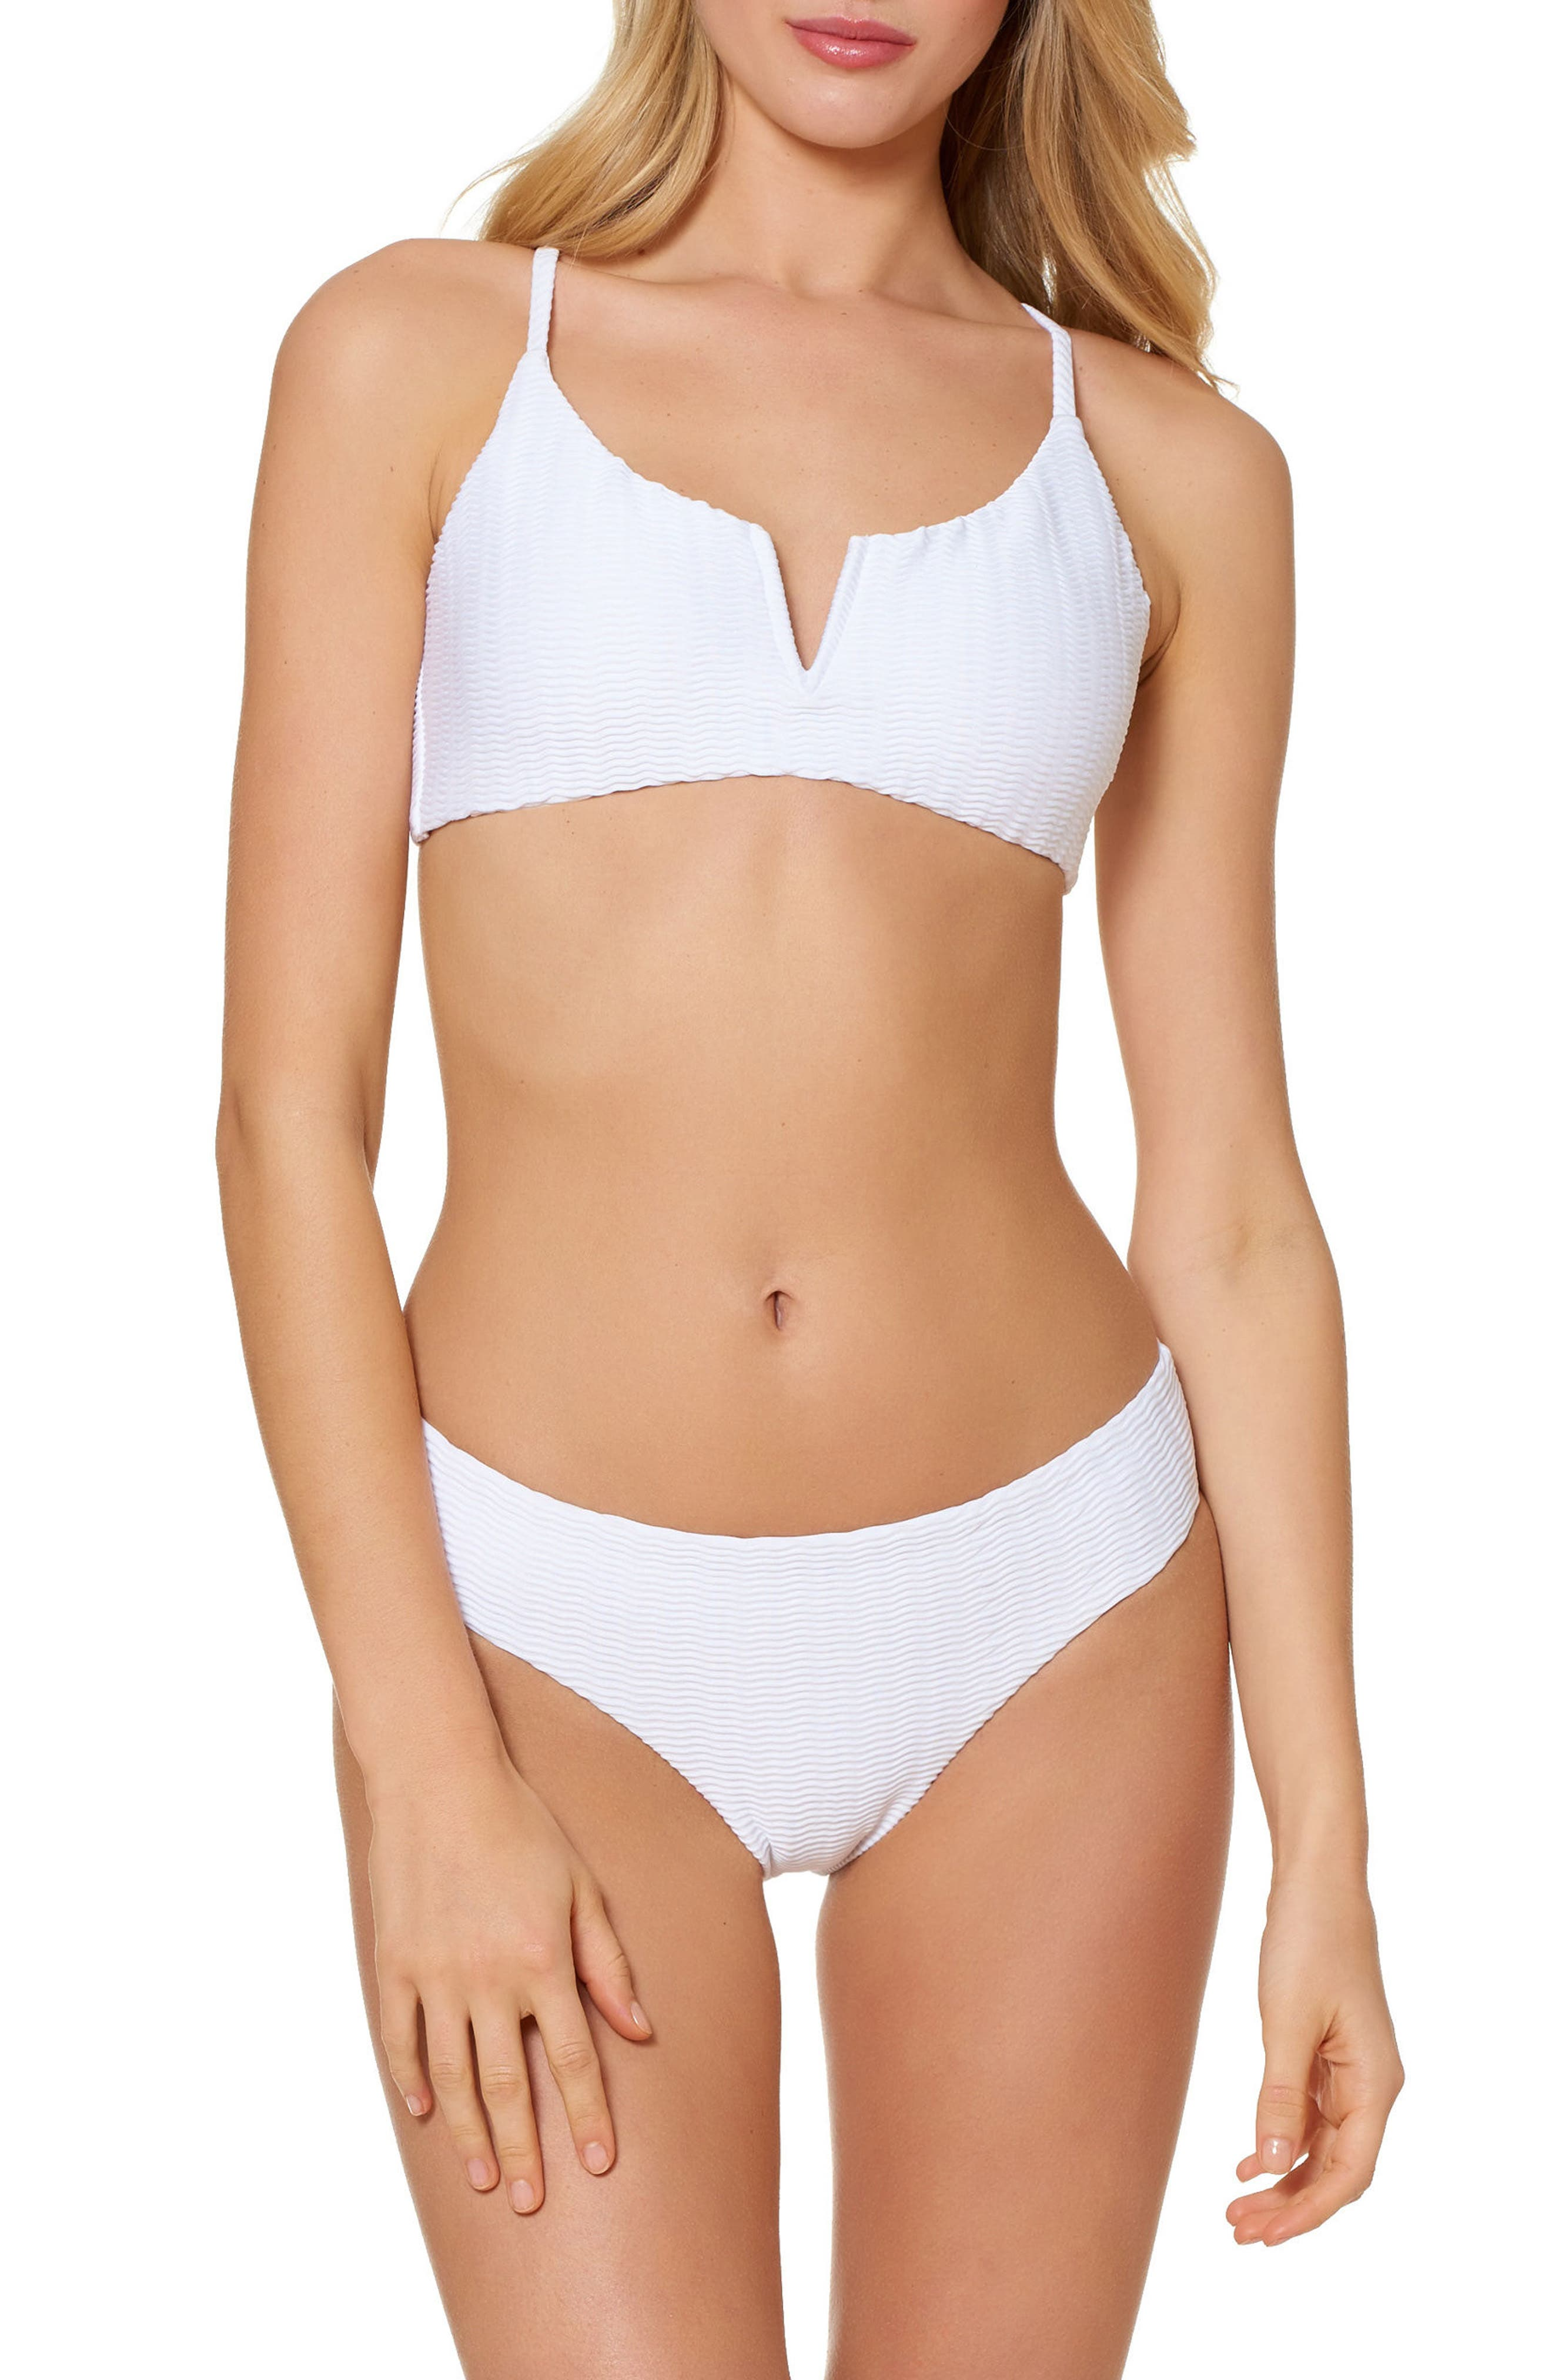 RED CARTER Textured Hipster Bikini Bottoms in White